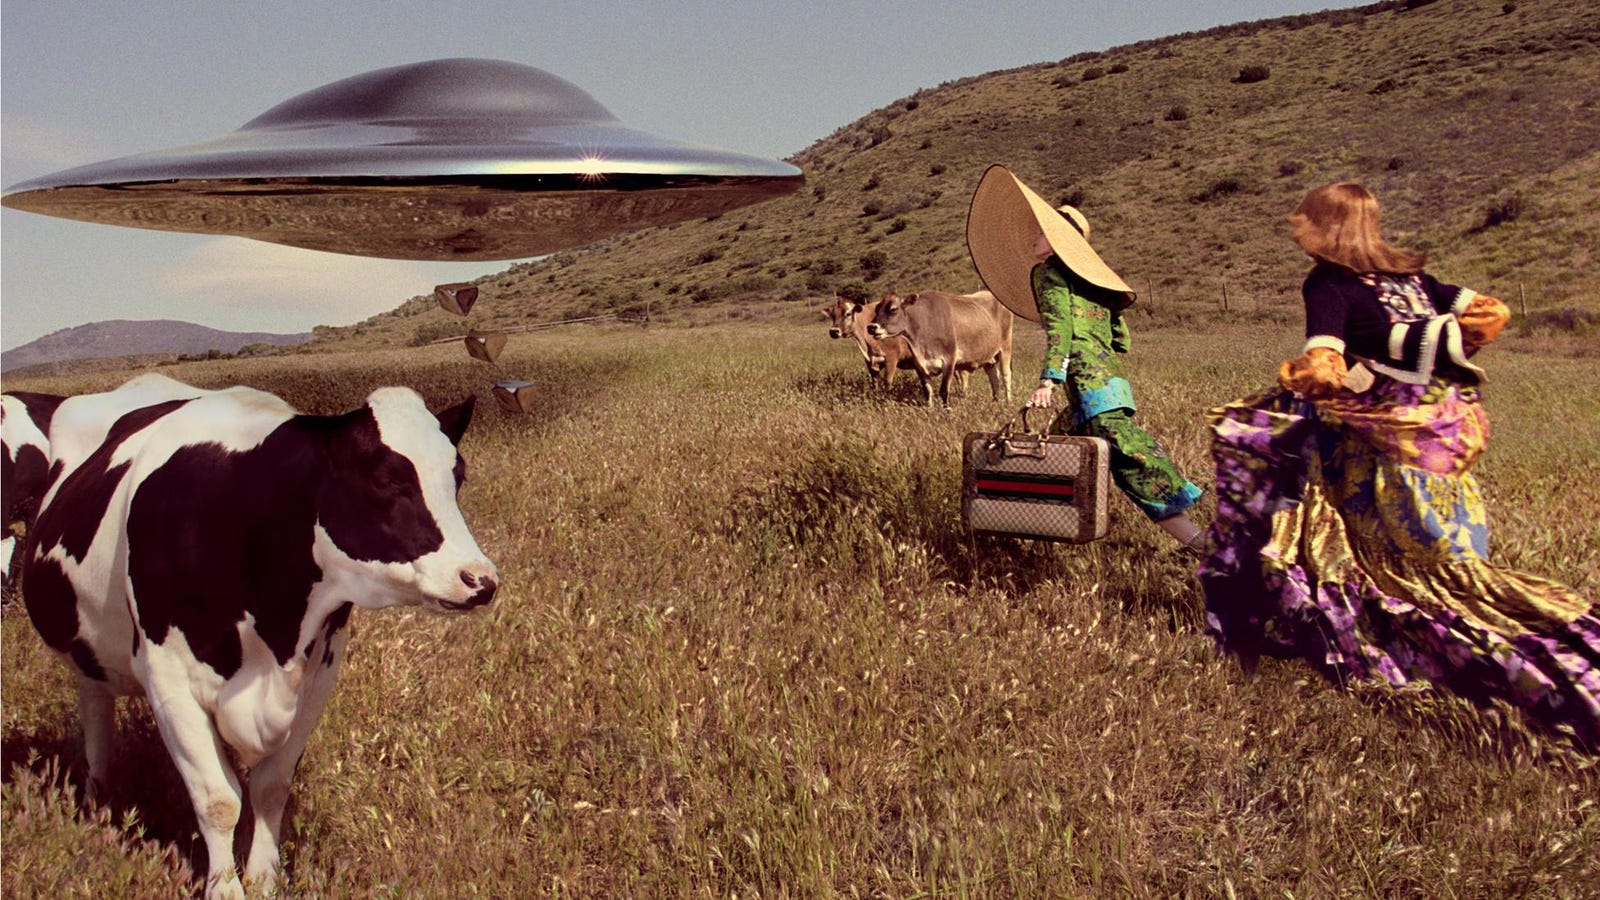 Animal Farm Porn Vintage Movie gucci spoofs star trek in bonkers outer space-themed photo shoot